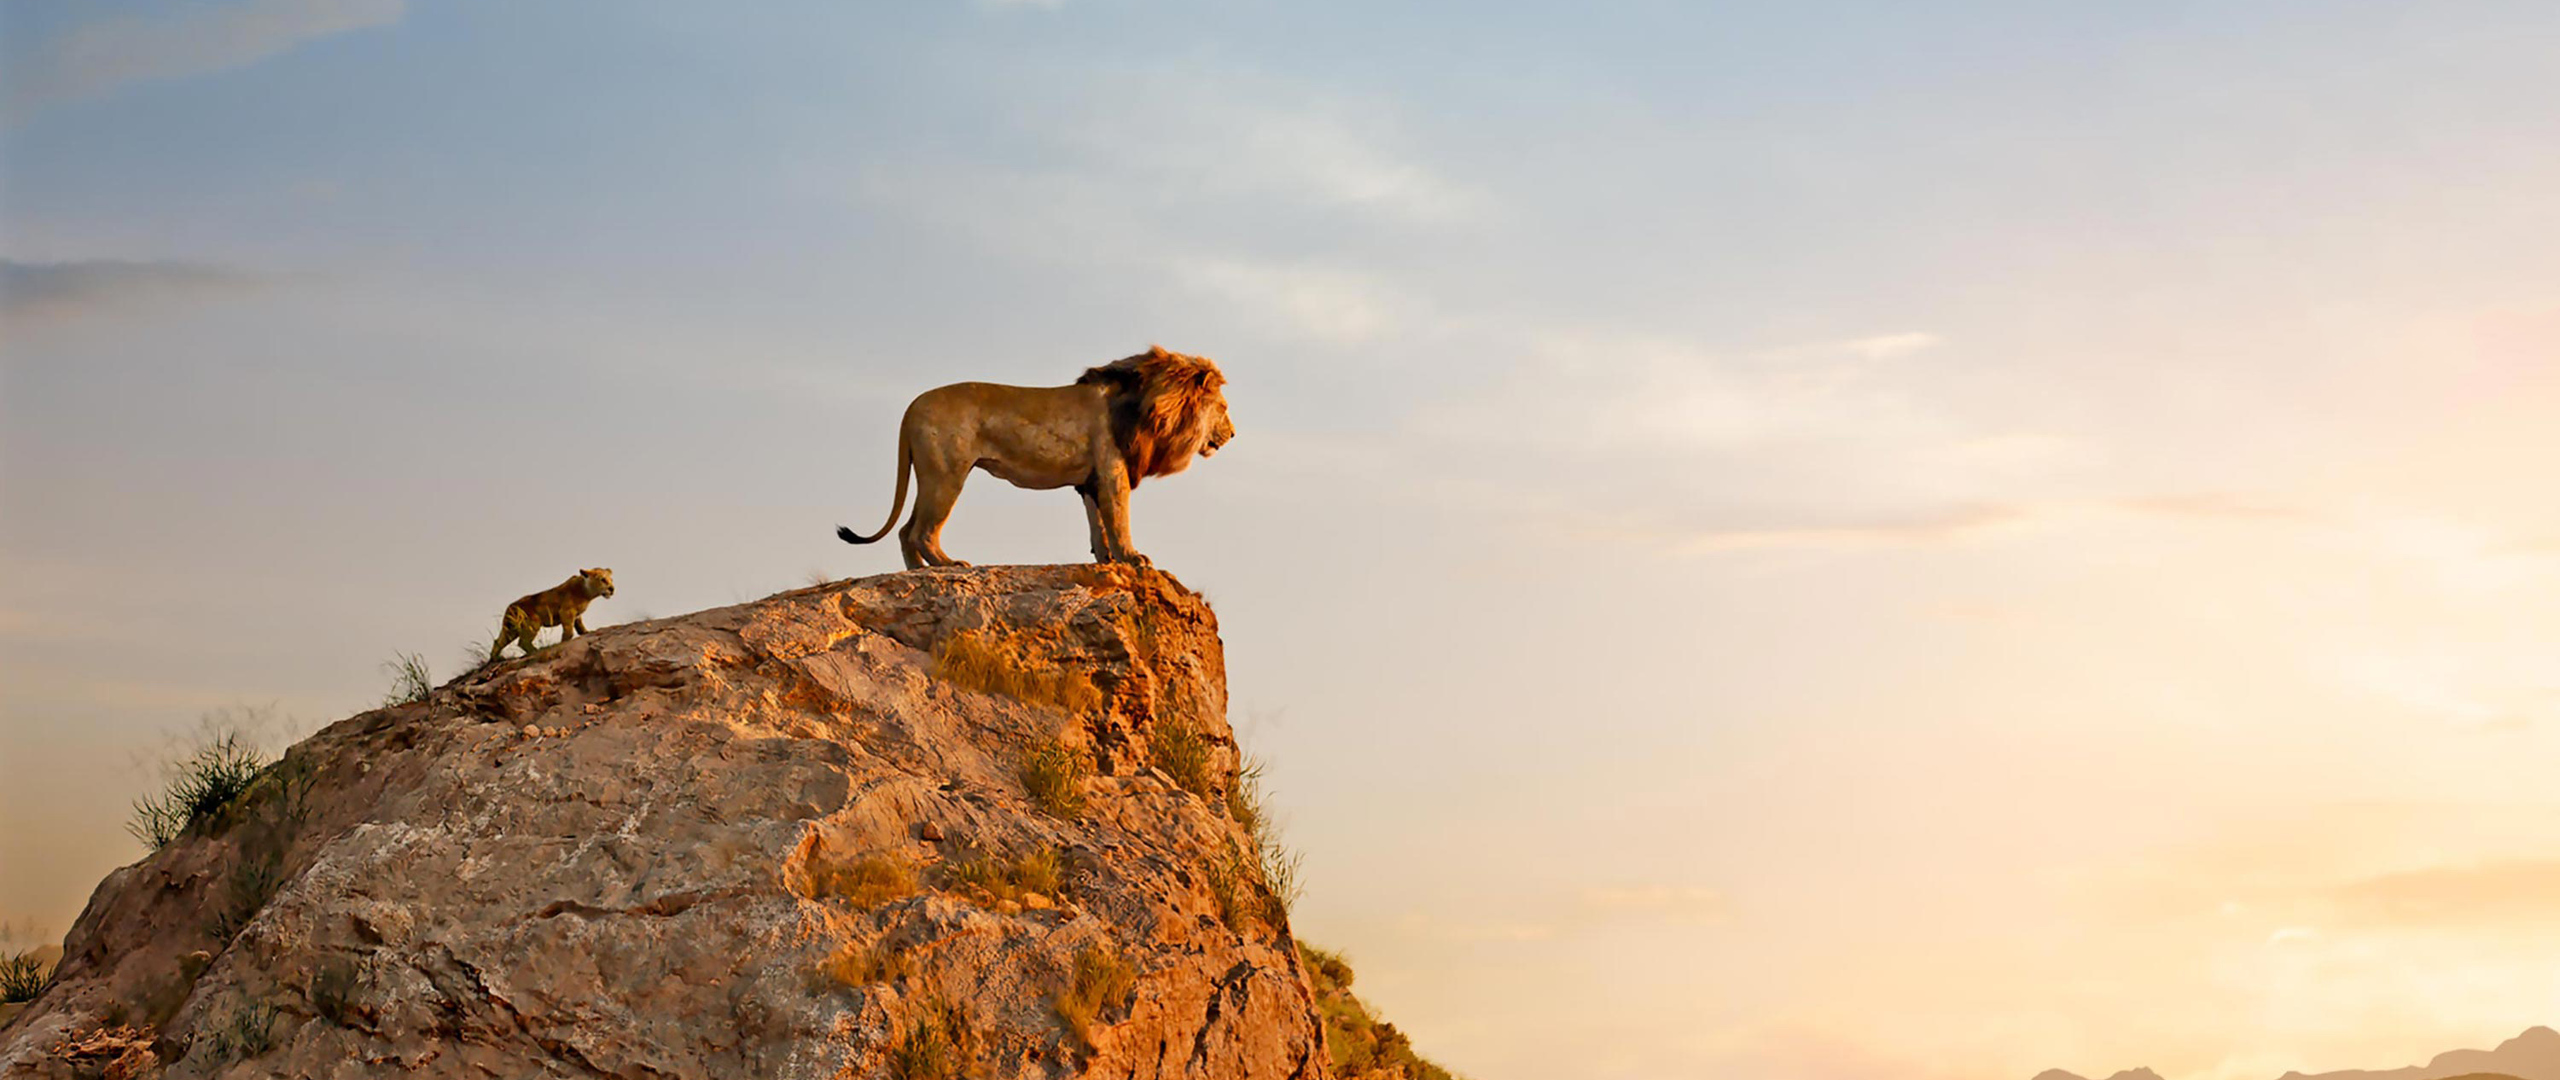 the-lion-king-2019-entertainment-weekly-6j.jpg